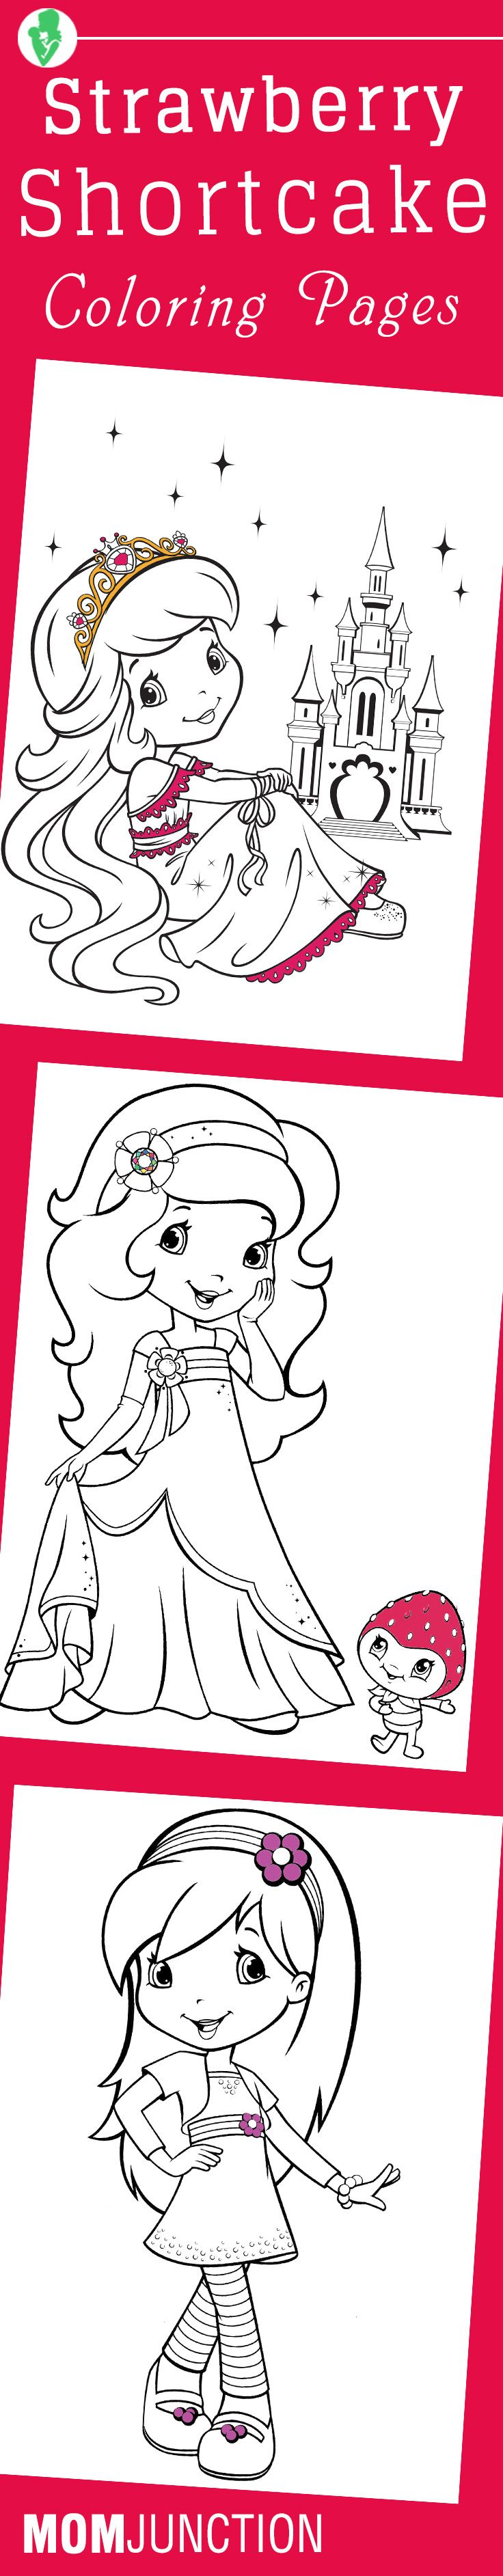 Pizza lessons and a pizza coloring page printable - Top 20 Free Printable Strawberry Shortcake Coloring Pages Online